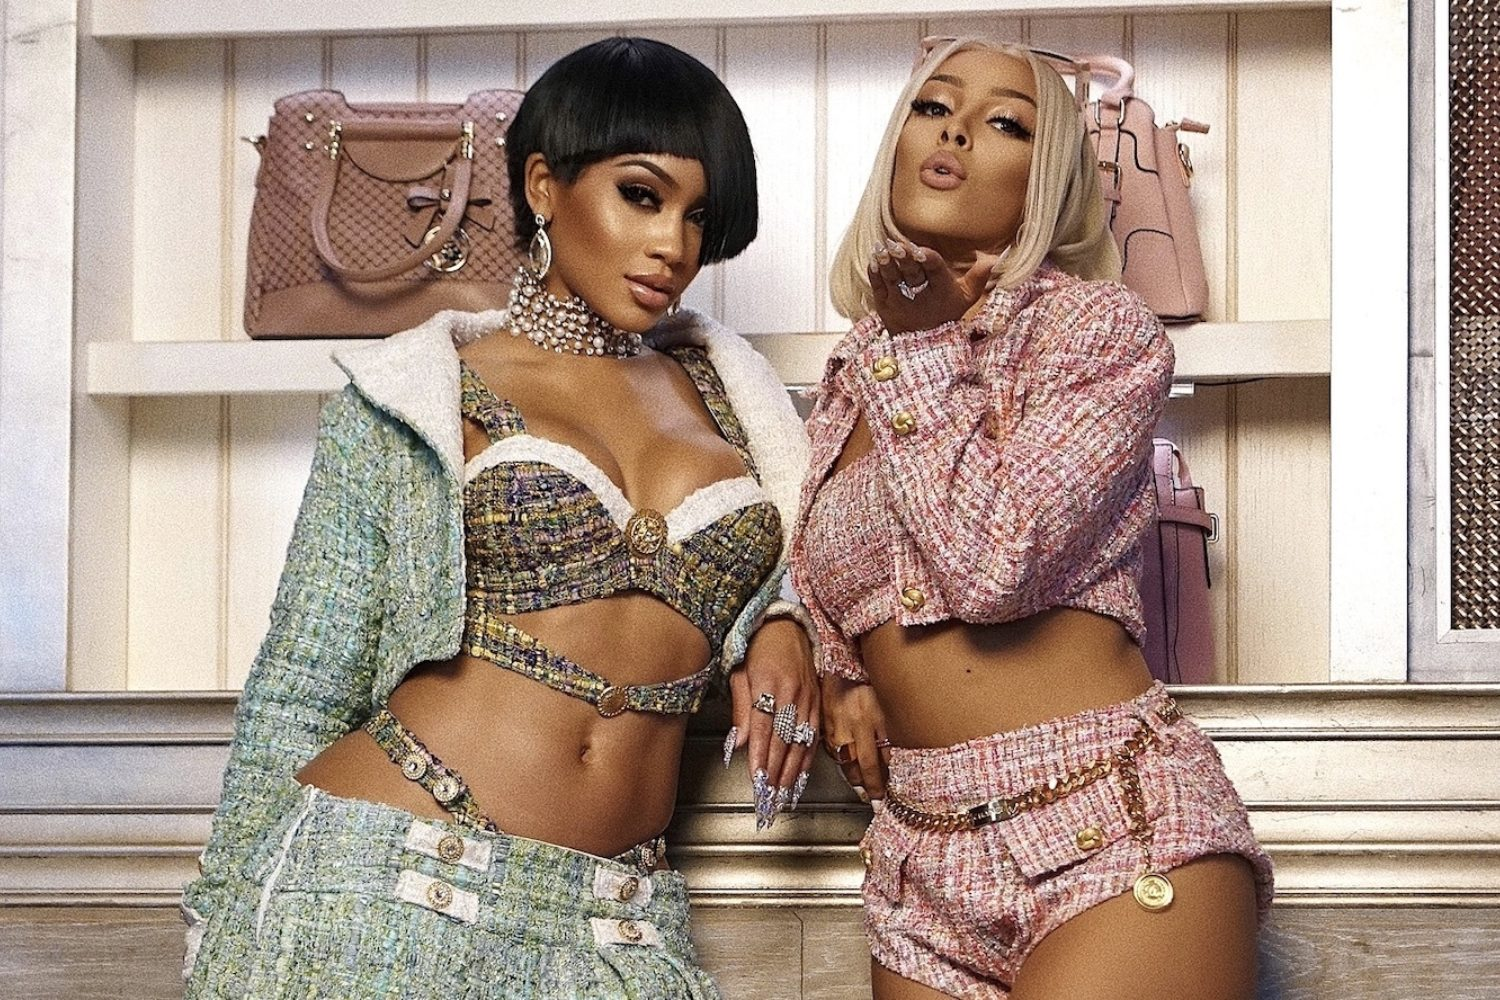 Doja Cat and Saweetie link up for new track 'Best Friend'